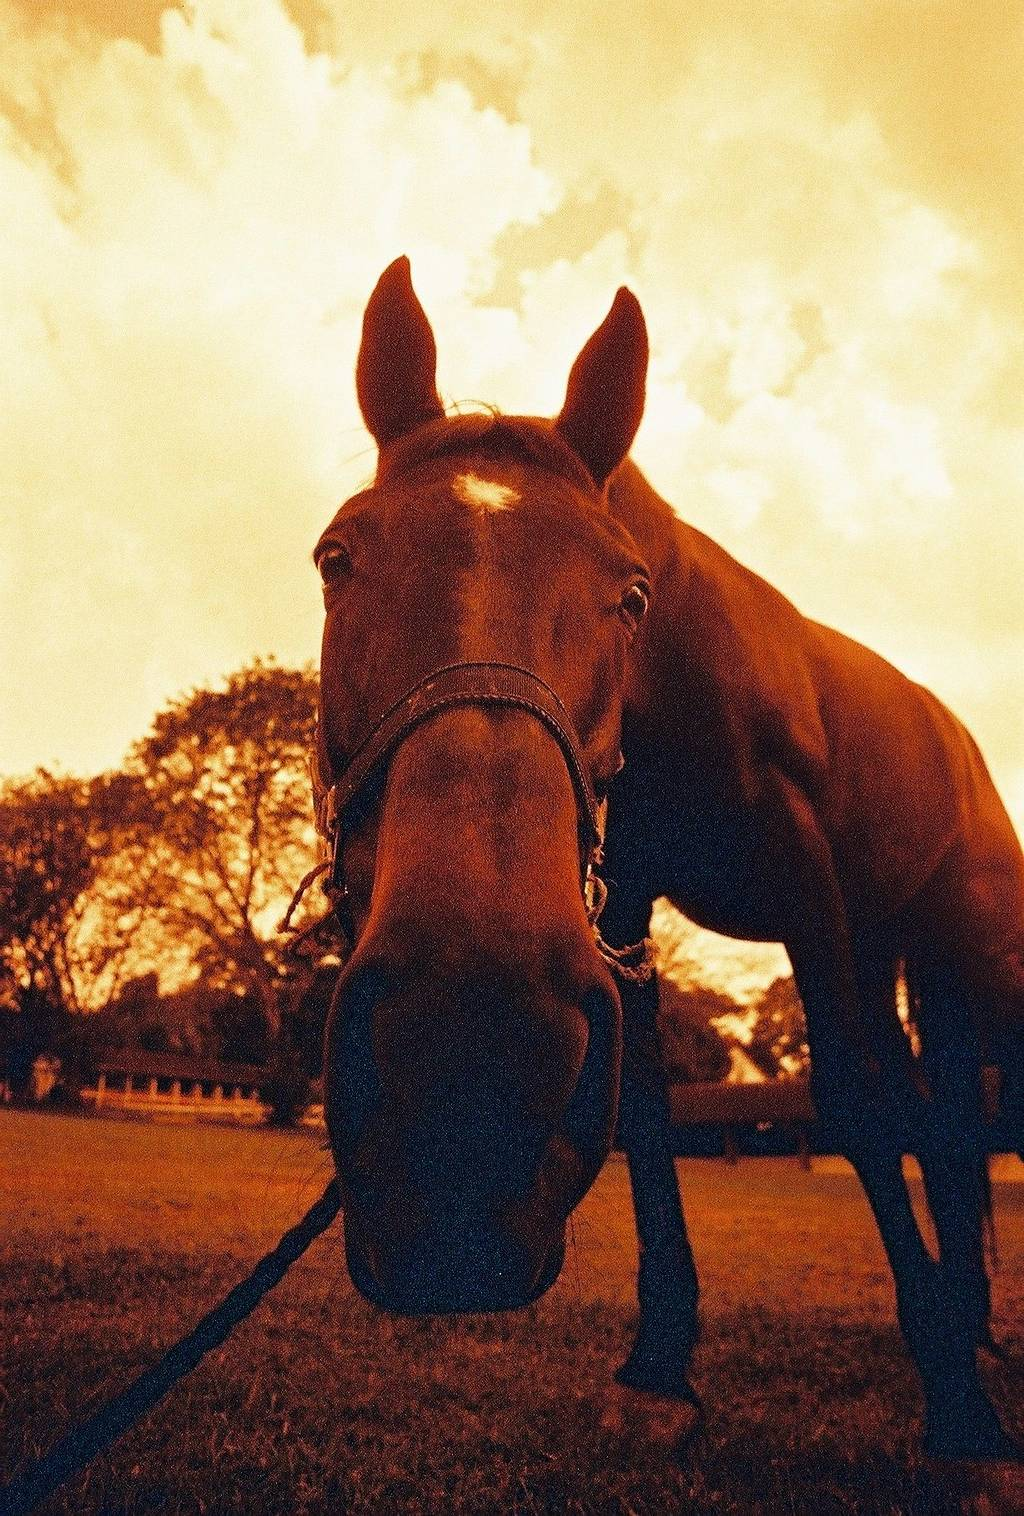 My Analogue Days: Giving the Gift of Redscale